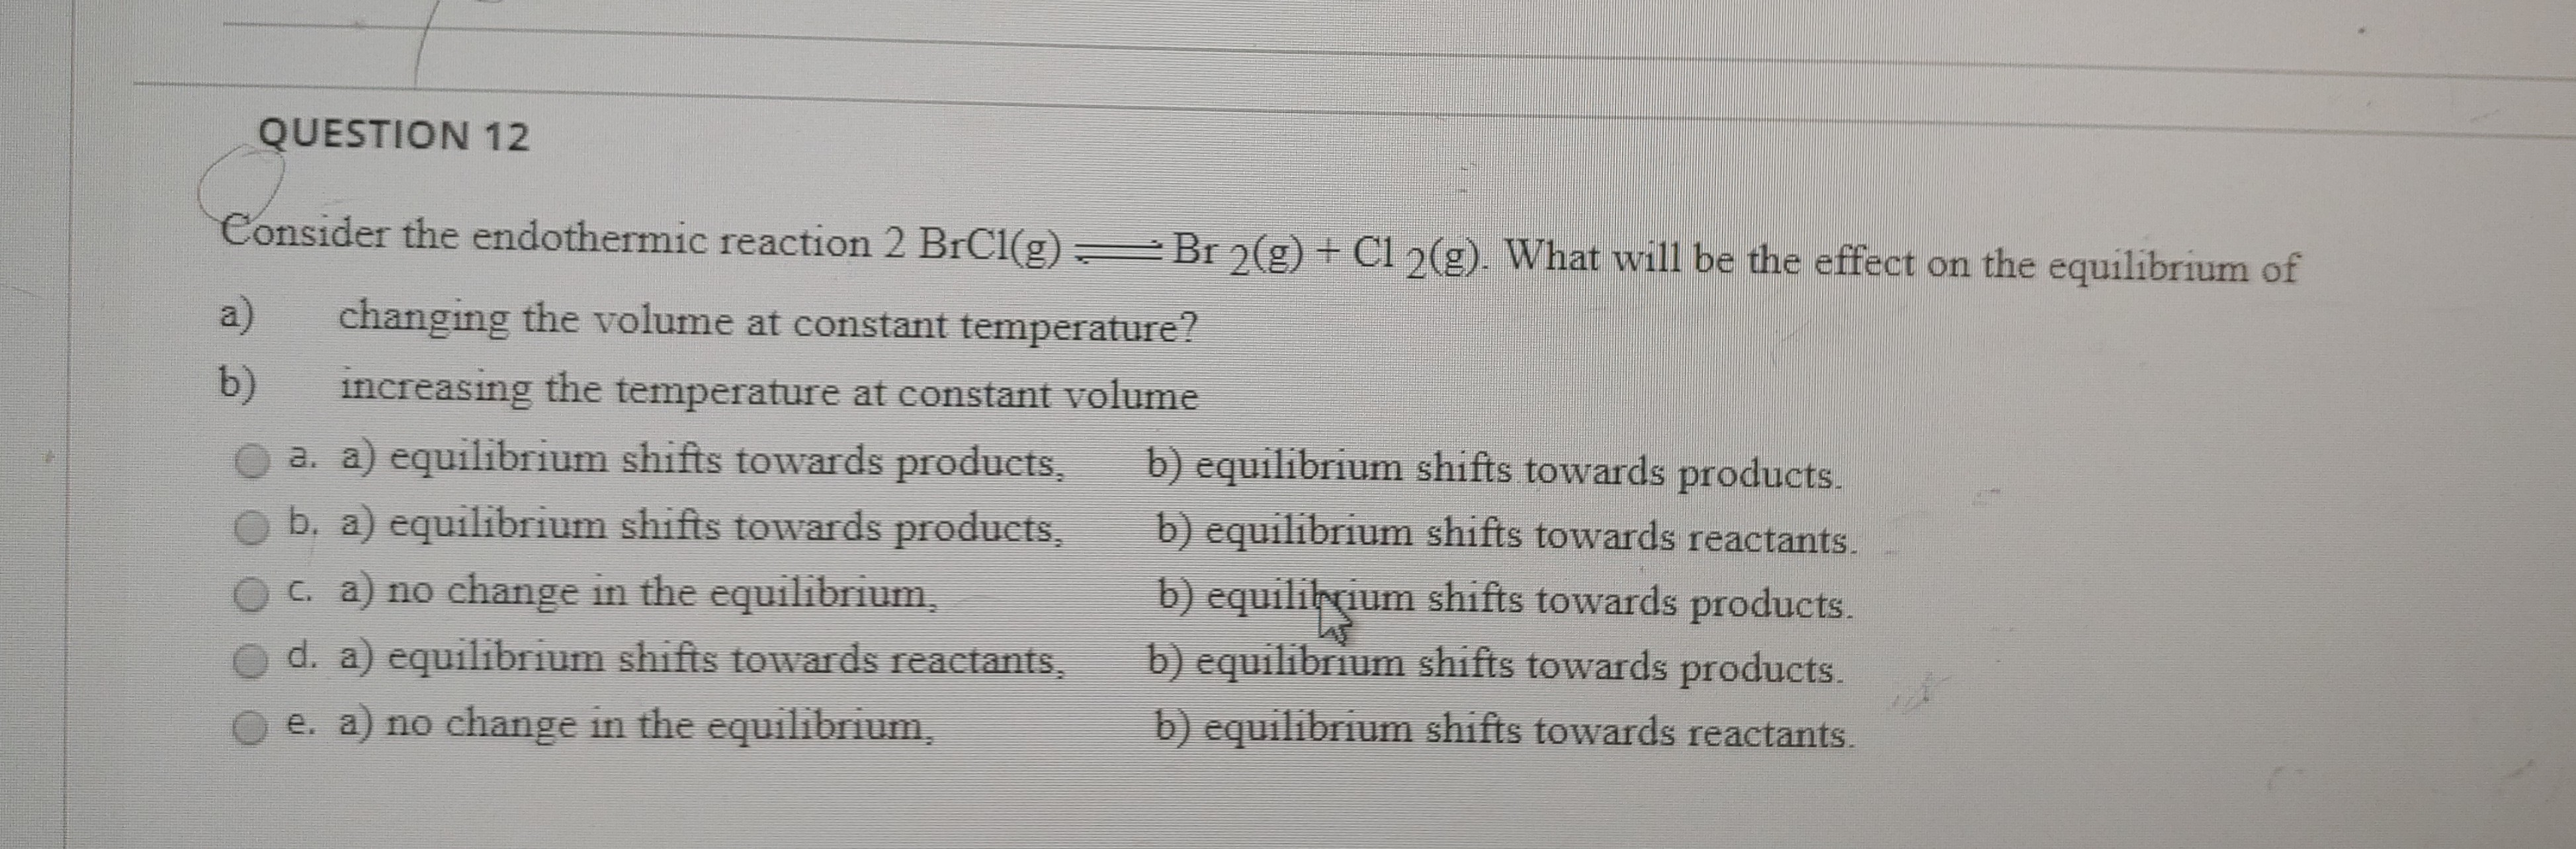 Consider The Endothermic Reaction 2 Brcl G Br2 G Cl2